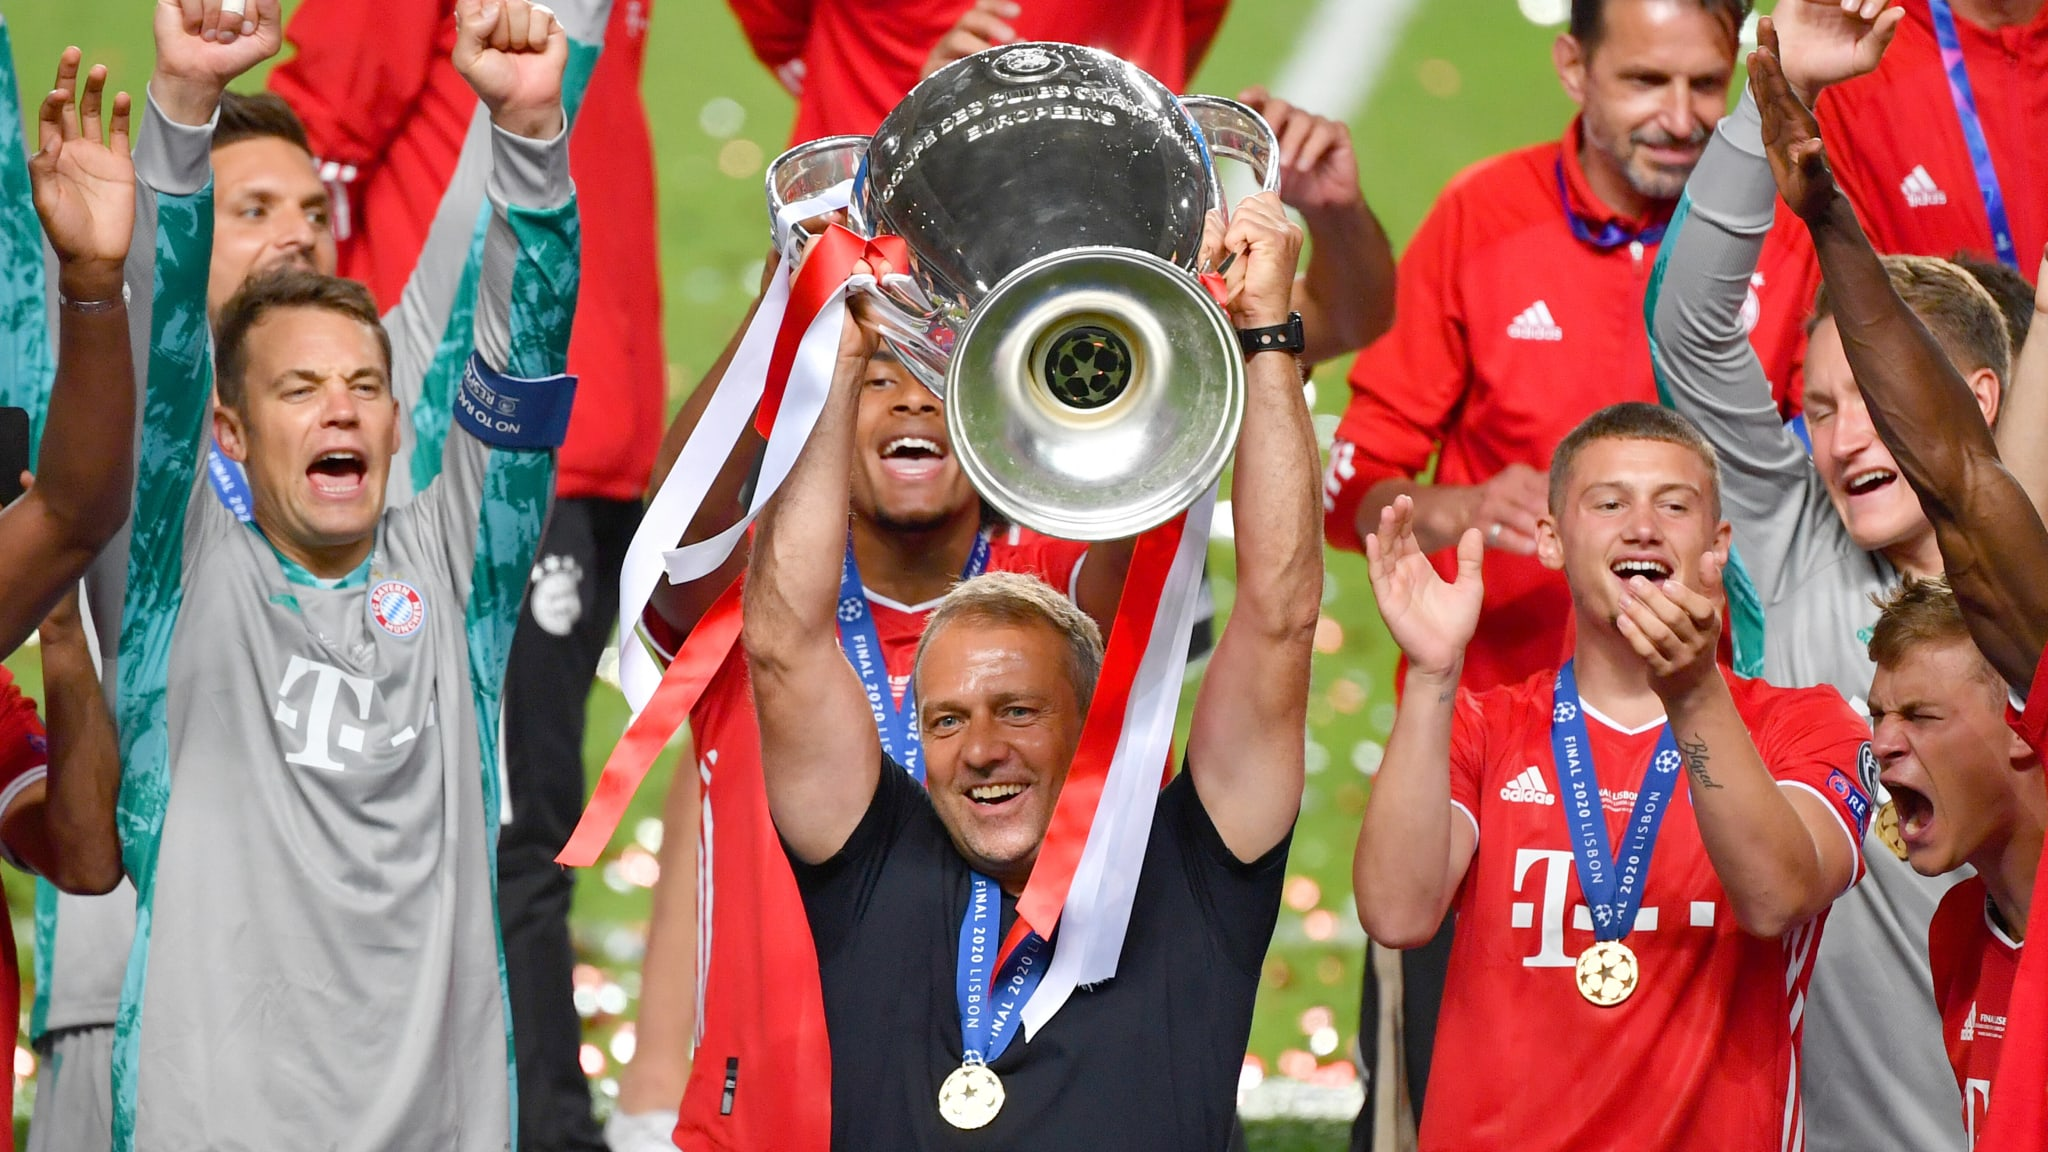 FC Bayern München coach Hansi Flick with the UEFA Champions League trophy 2020